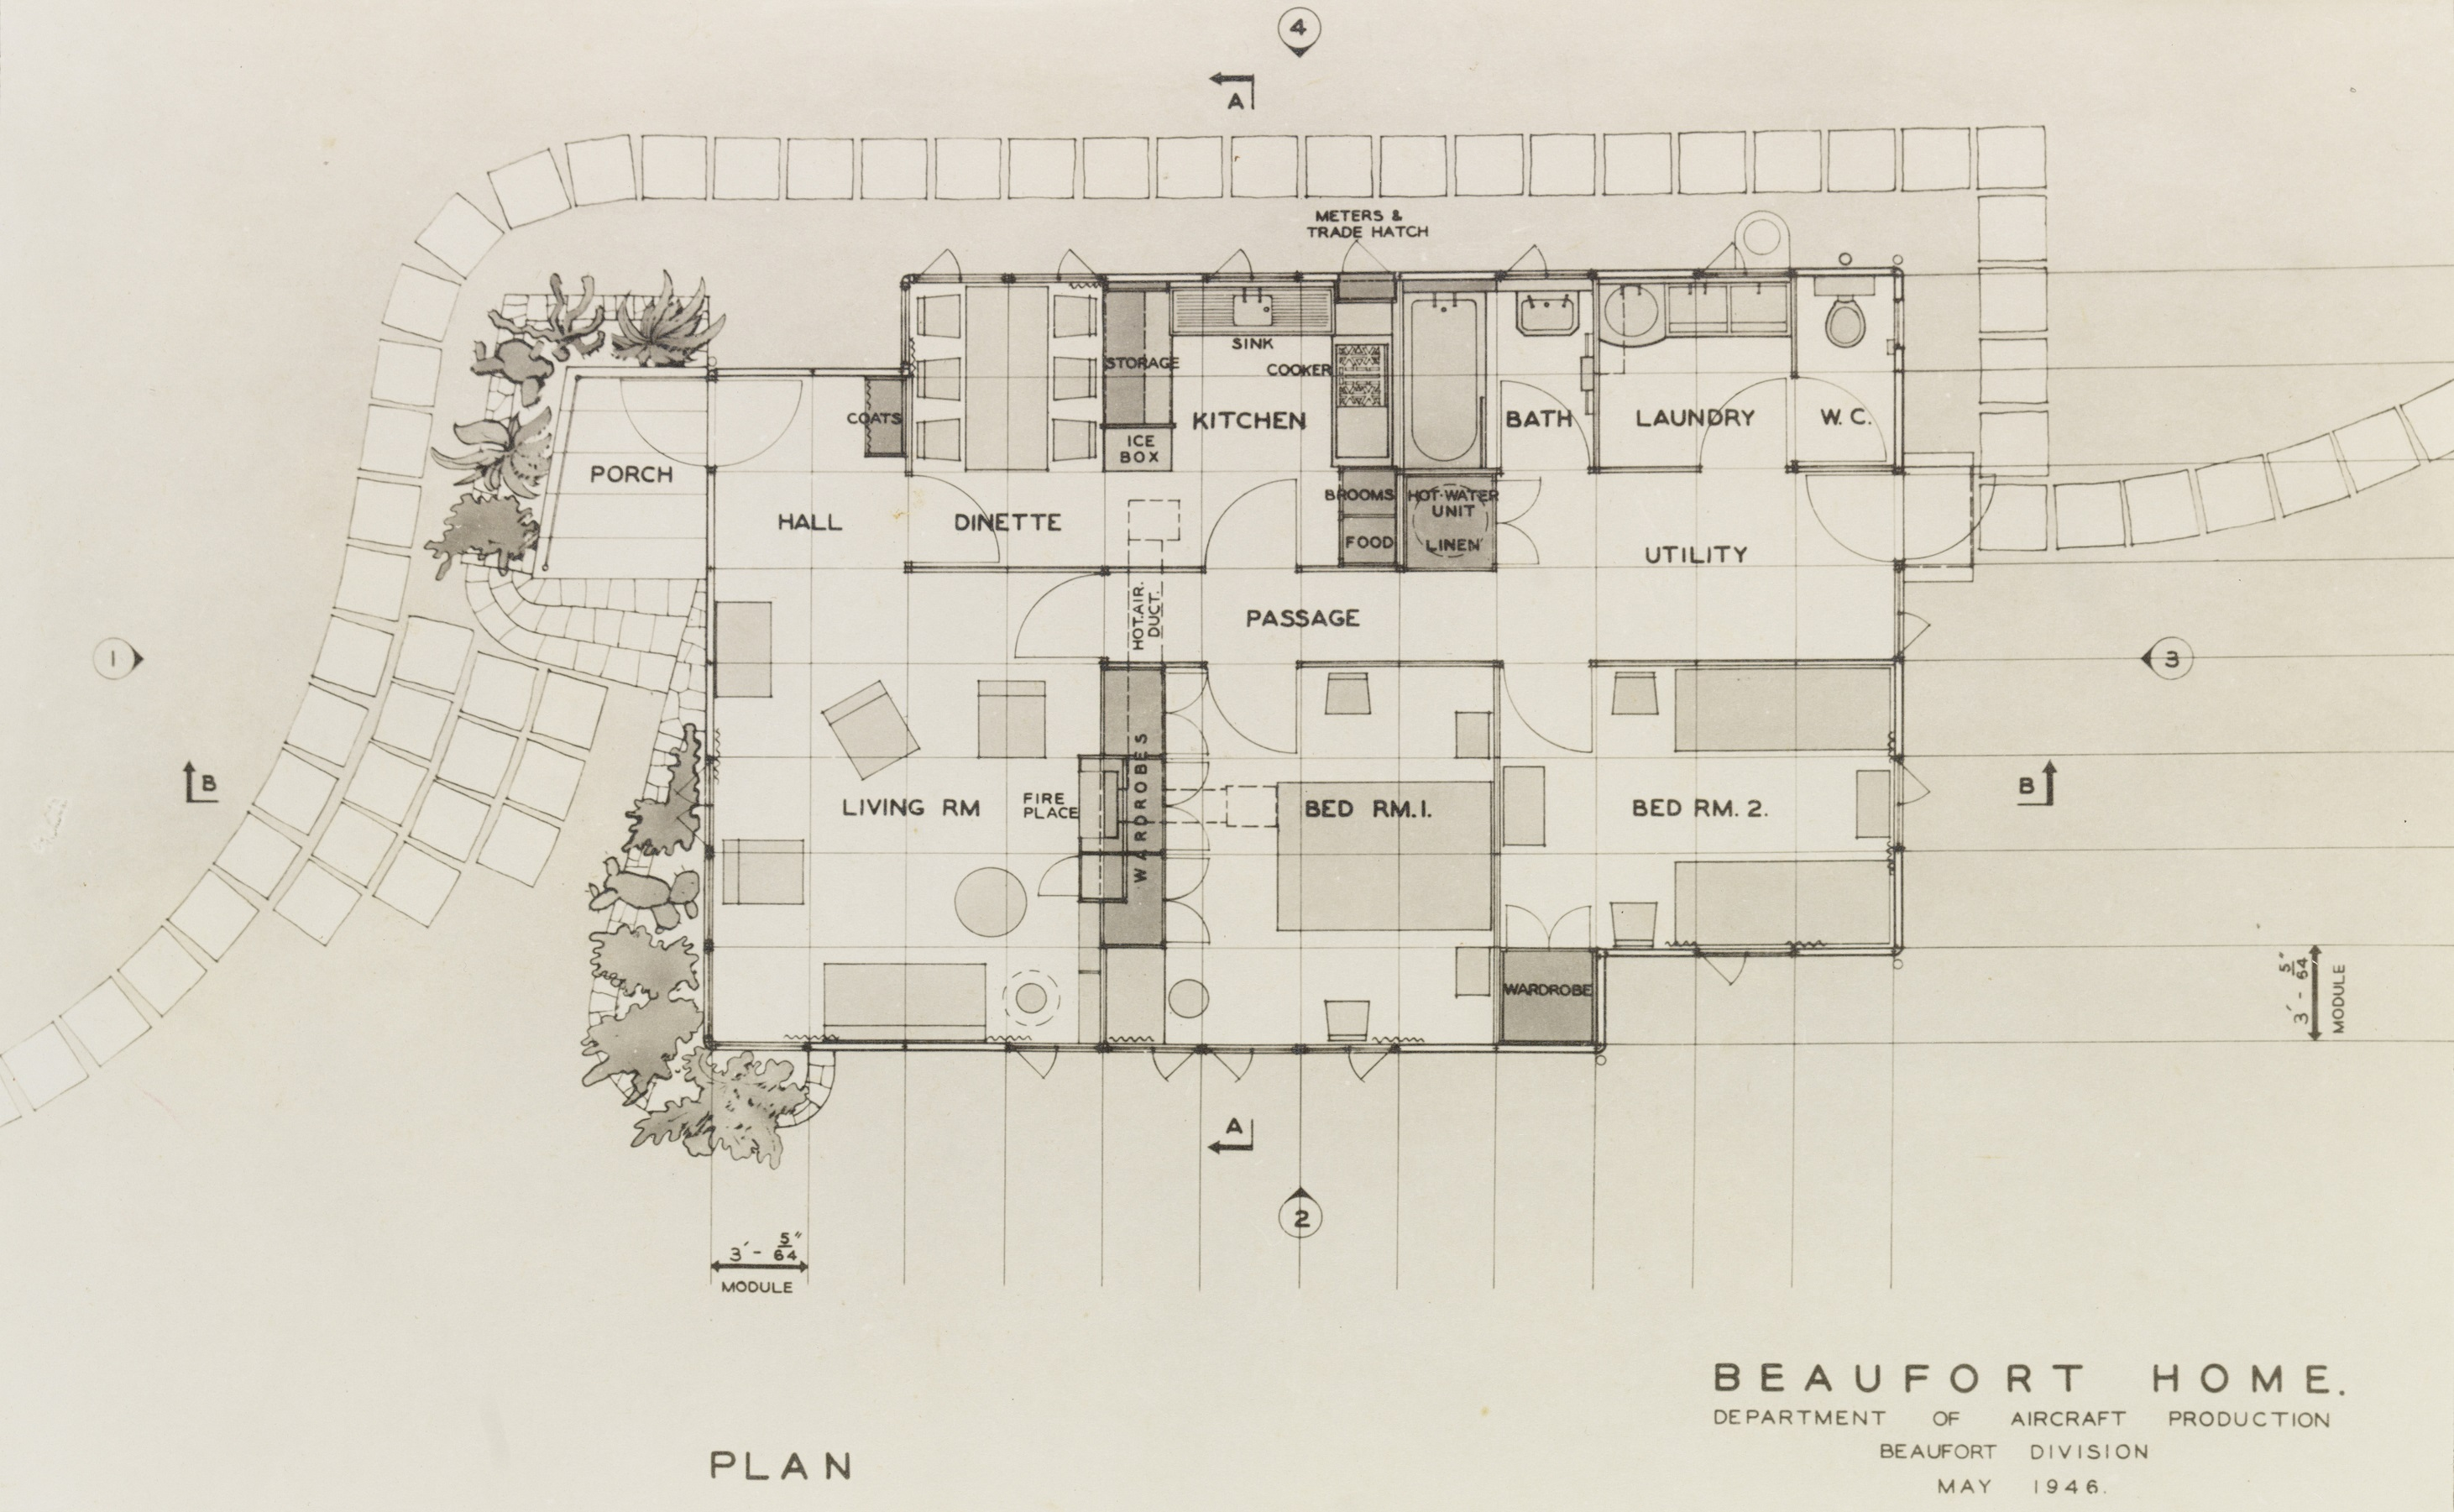 Plan, Beaufort Home, Beaufort Division, Dept. of Aircraft Production, [designed by Arthur Baldwinson], May 1946. Architectural Plan. PXA 372 v.5/18